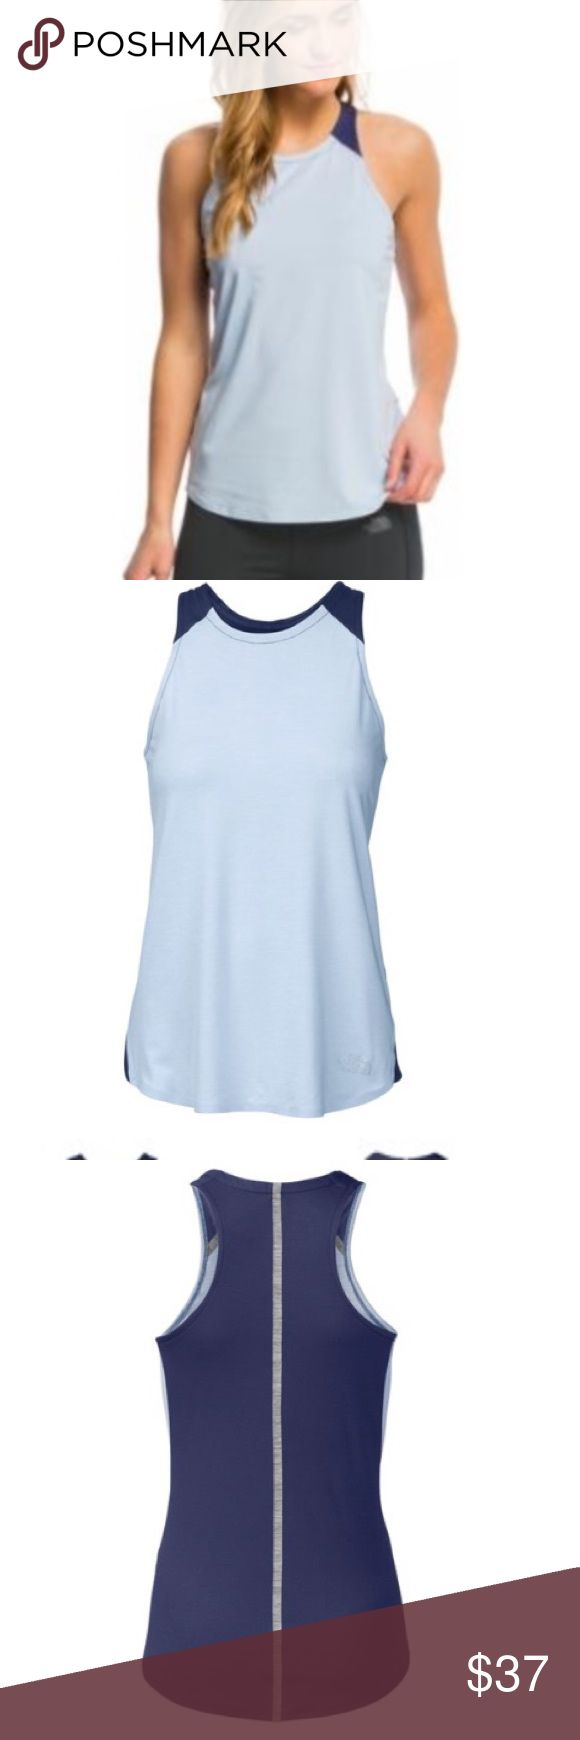 NWT THE NORTH FACE W DYNAMIX TANK TOP NWT THE NORTH FACE W DYNAMIX TANK FF PERFORMANCE/TRAINING TOP-M.   Color: PWDRBLHR/PTRTBL.  Powder blue heather/Patriot blue. The North Face Tops Tank Tops